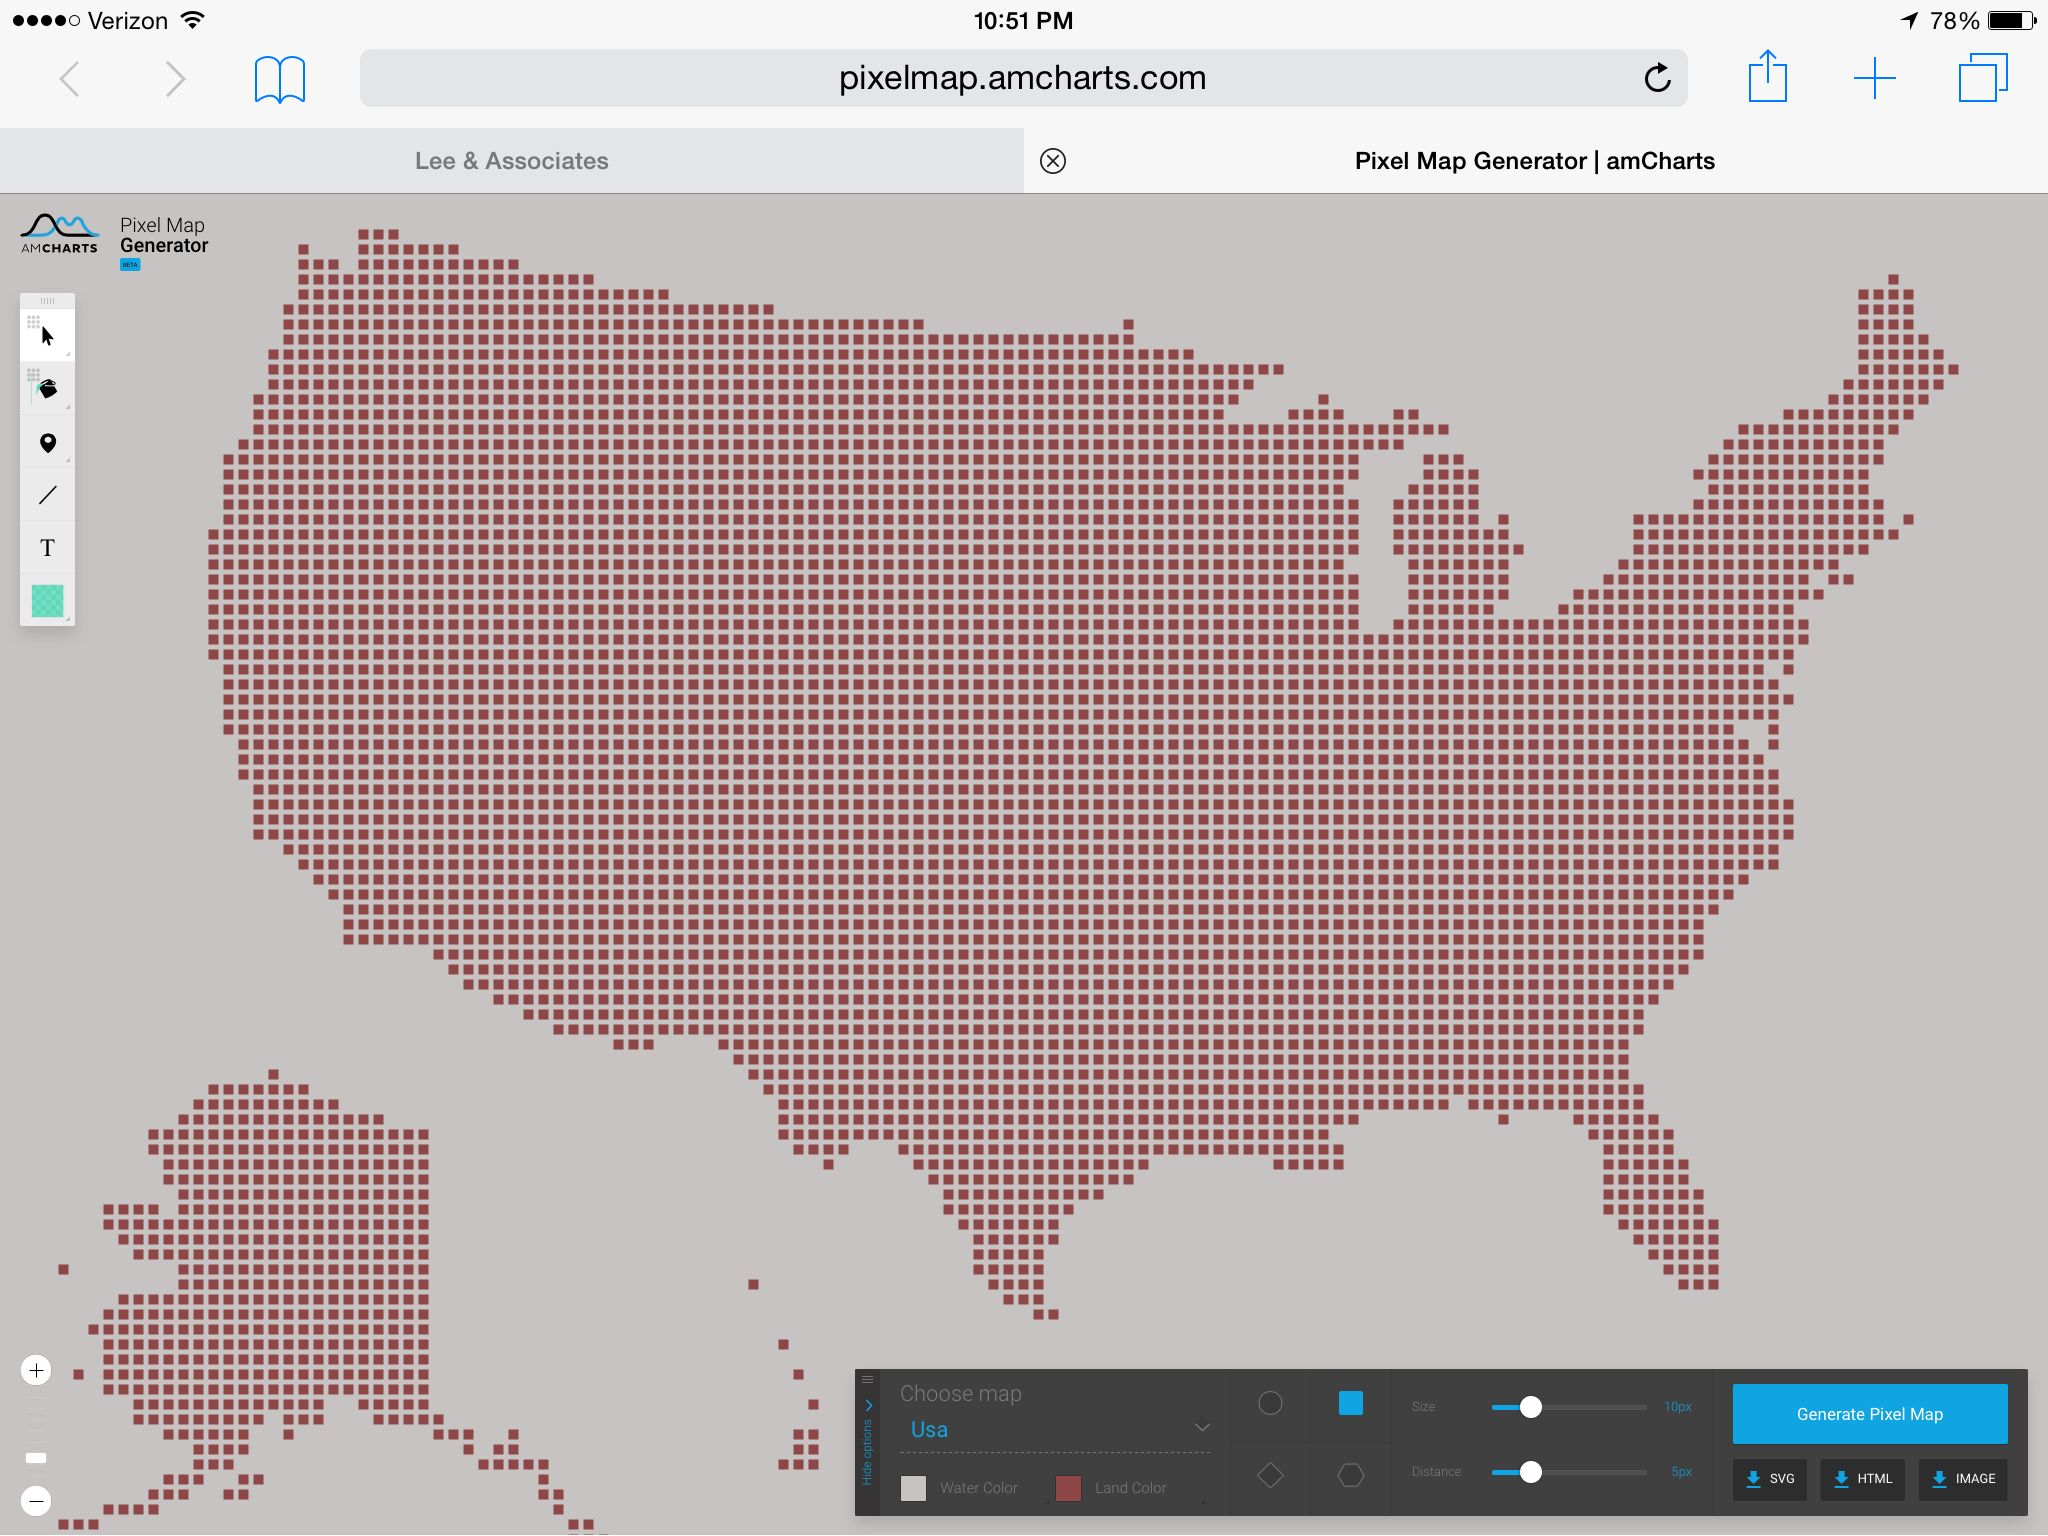 Pixel Map Wizard create custom pixel maps great for commercial